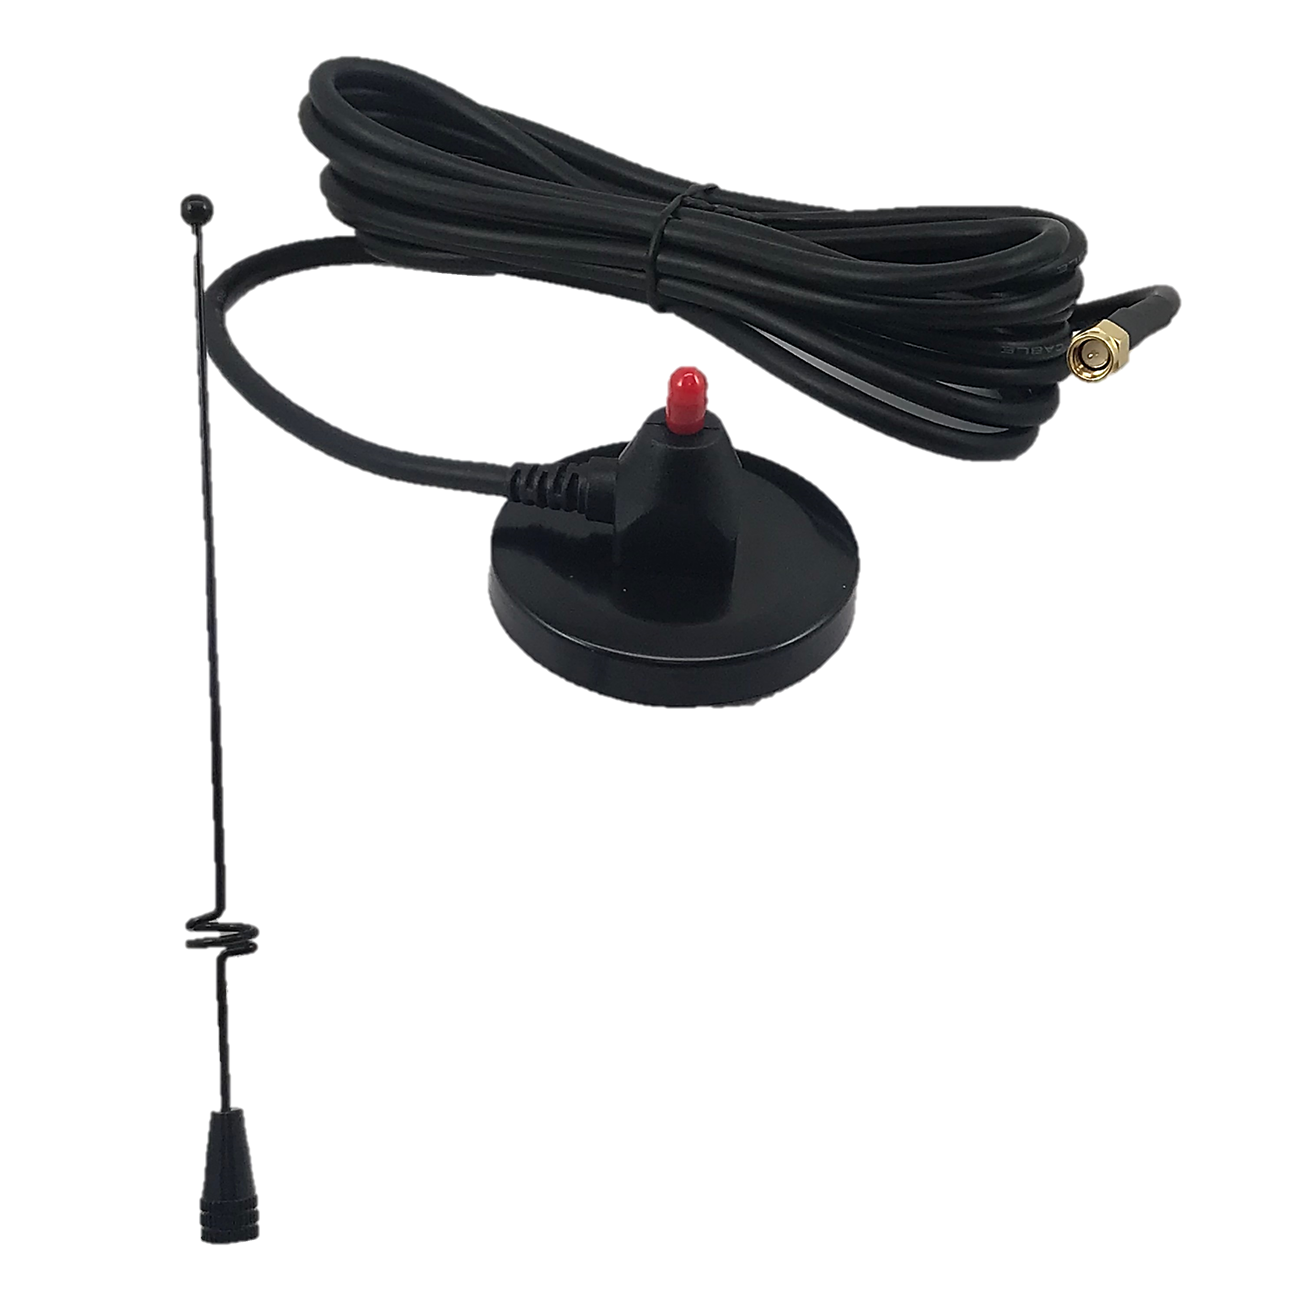 Digital Wireless Antenna Transmitter